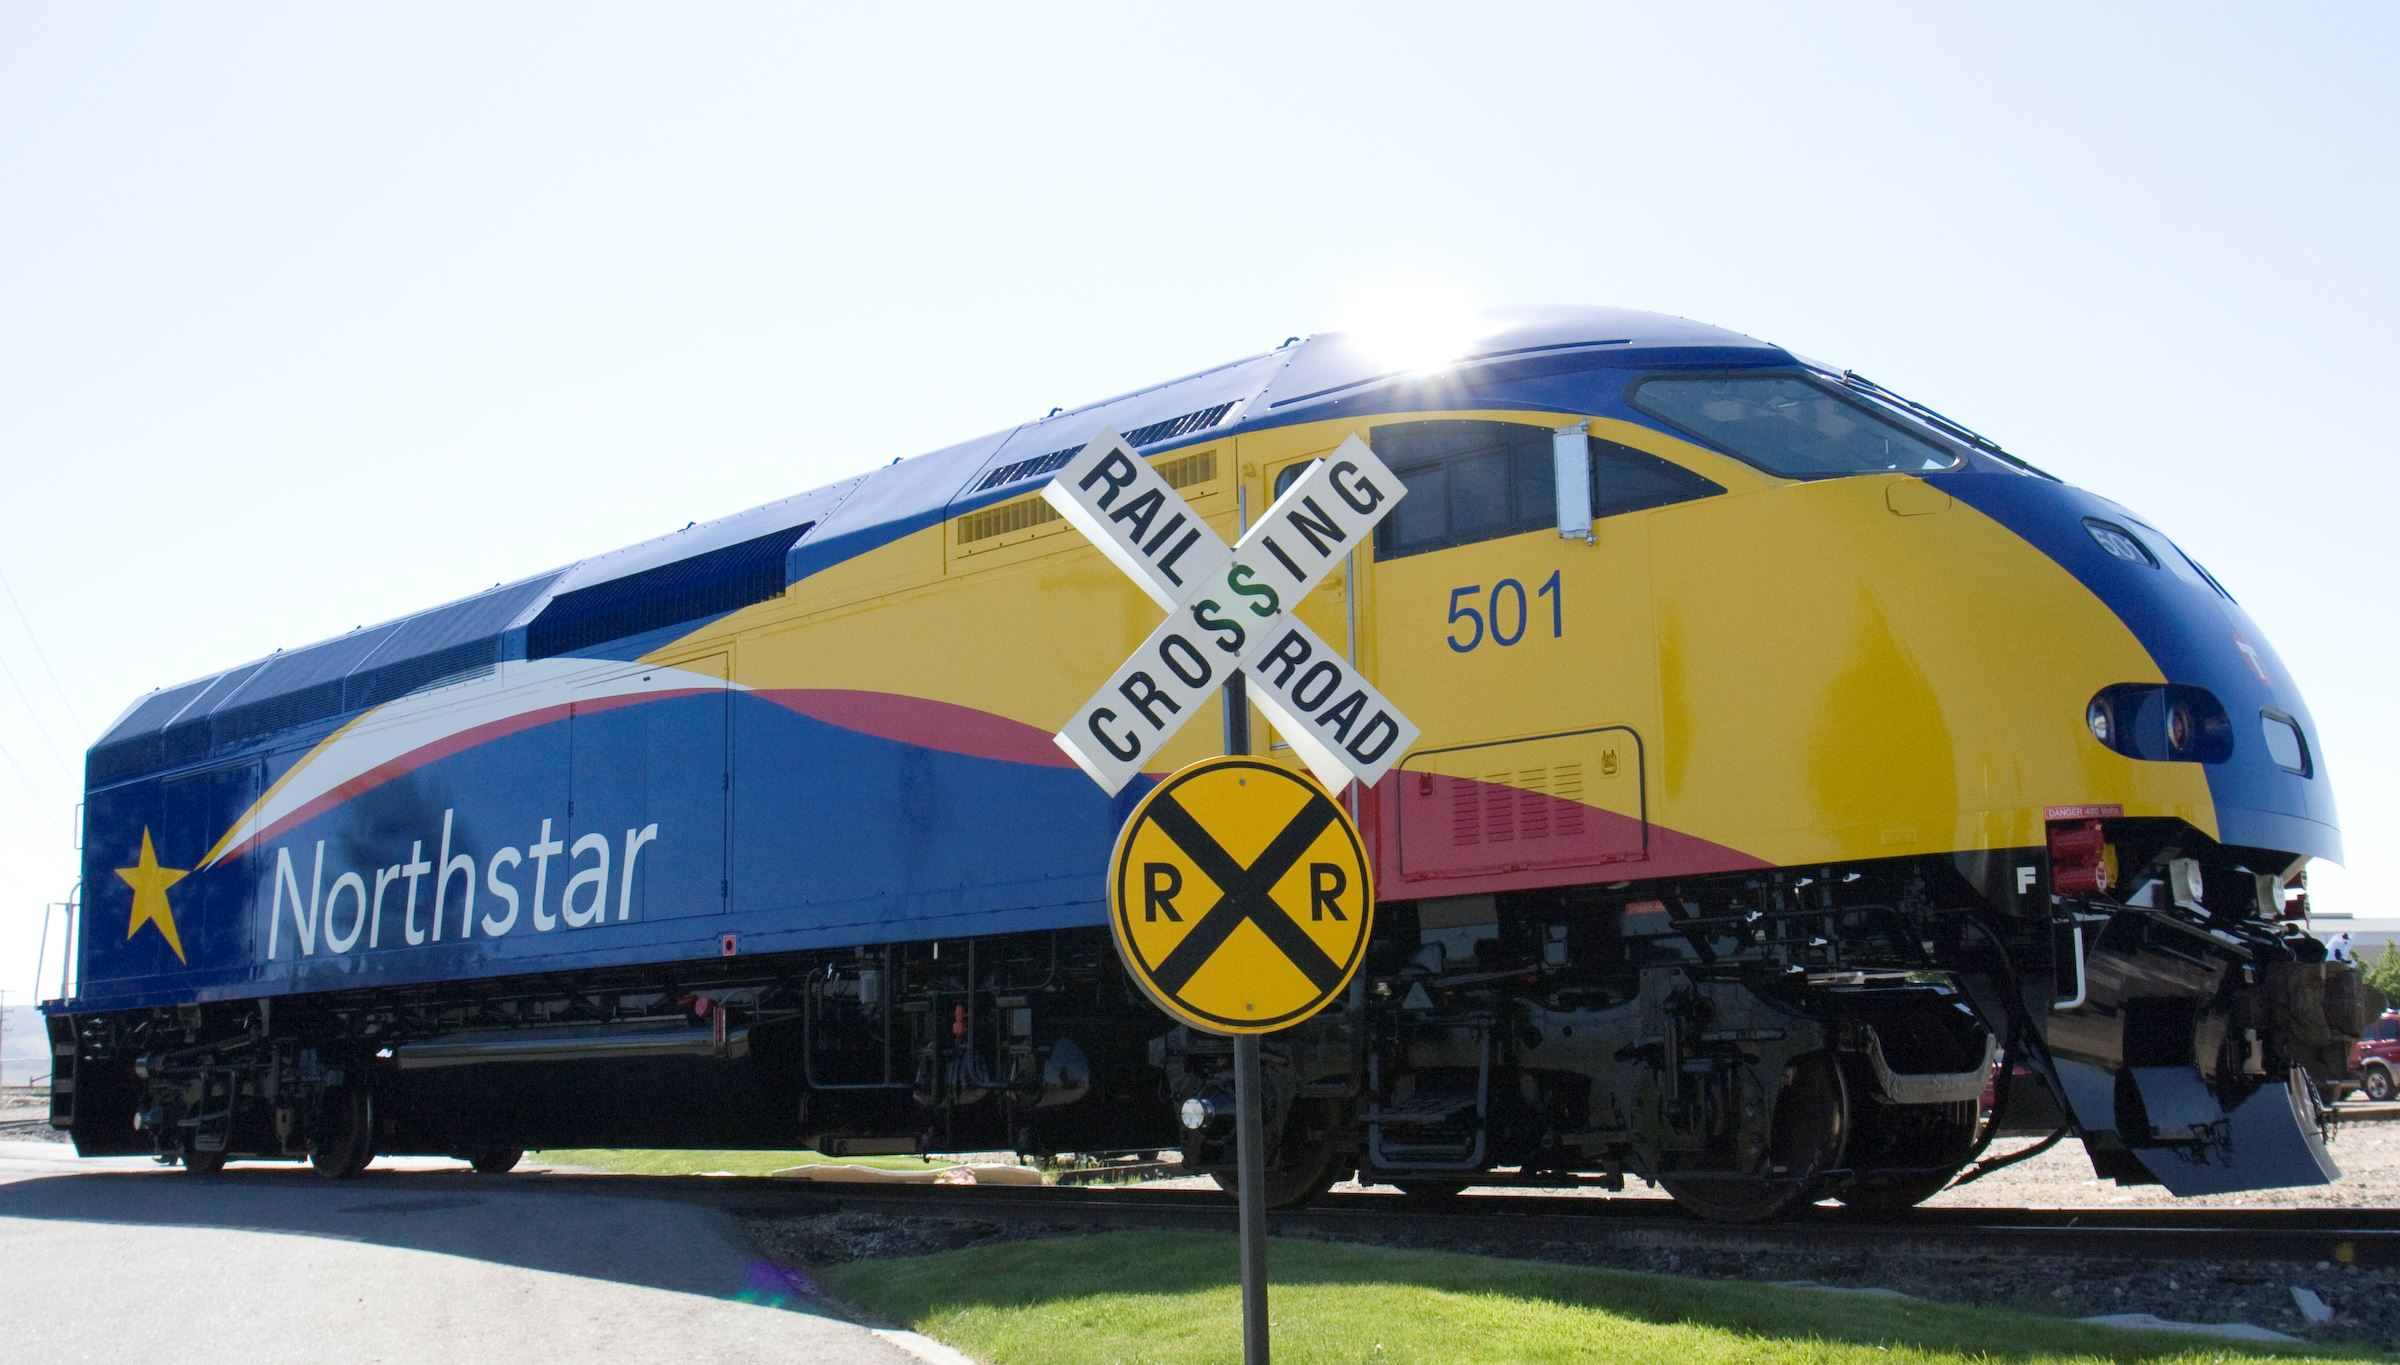 NorthStar commuter train